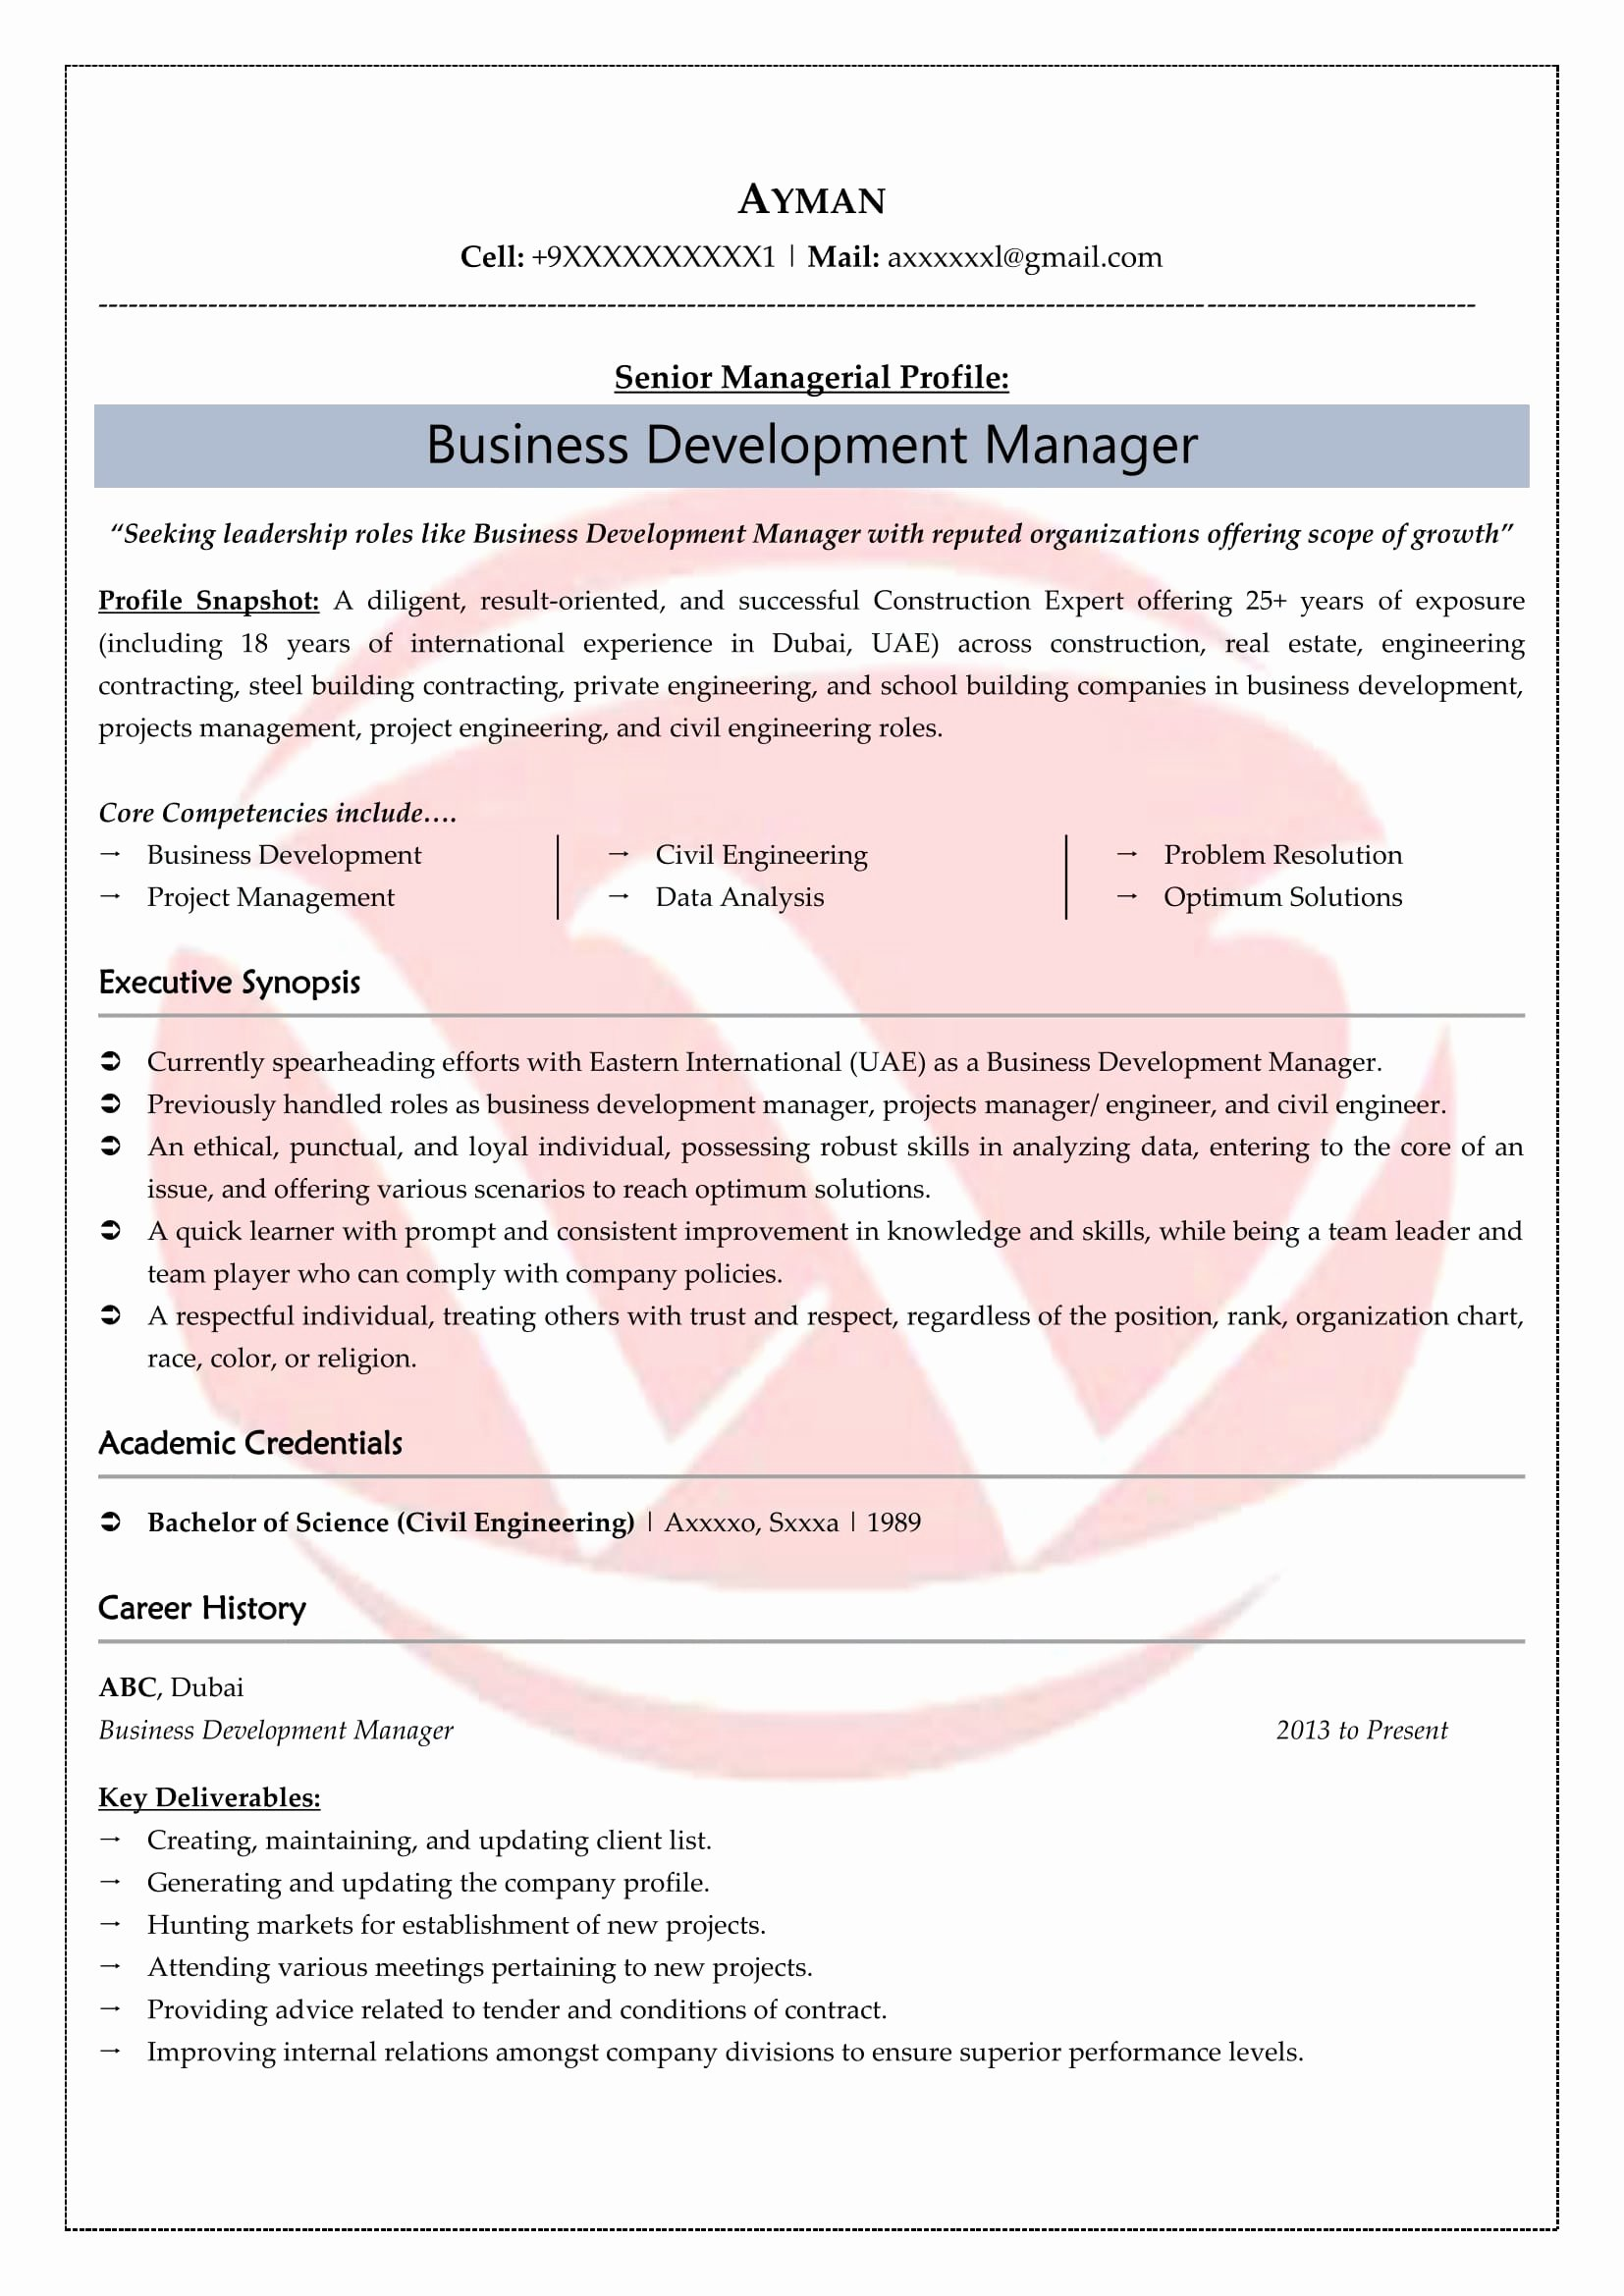 Business Development Manager Resume Inspirational Business Development Sample Resumes Download Resume